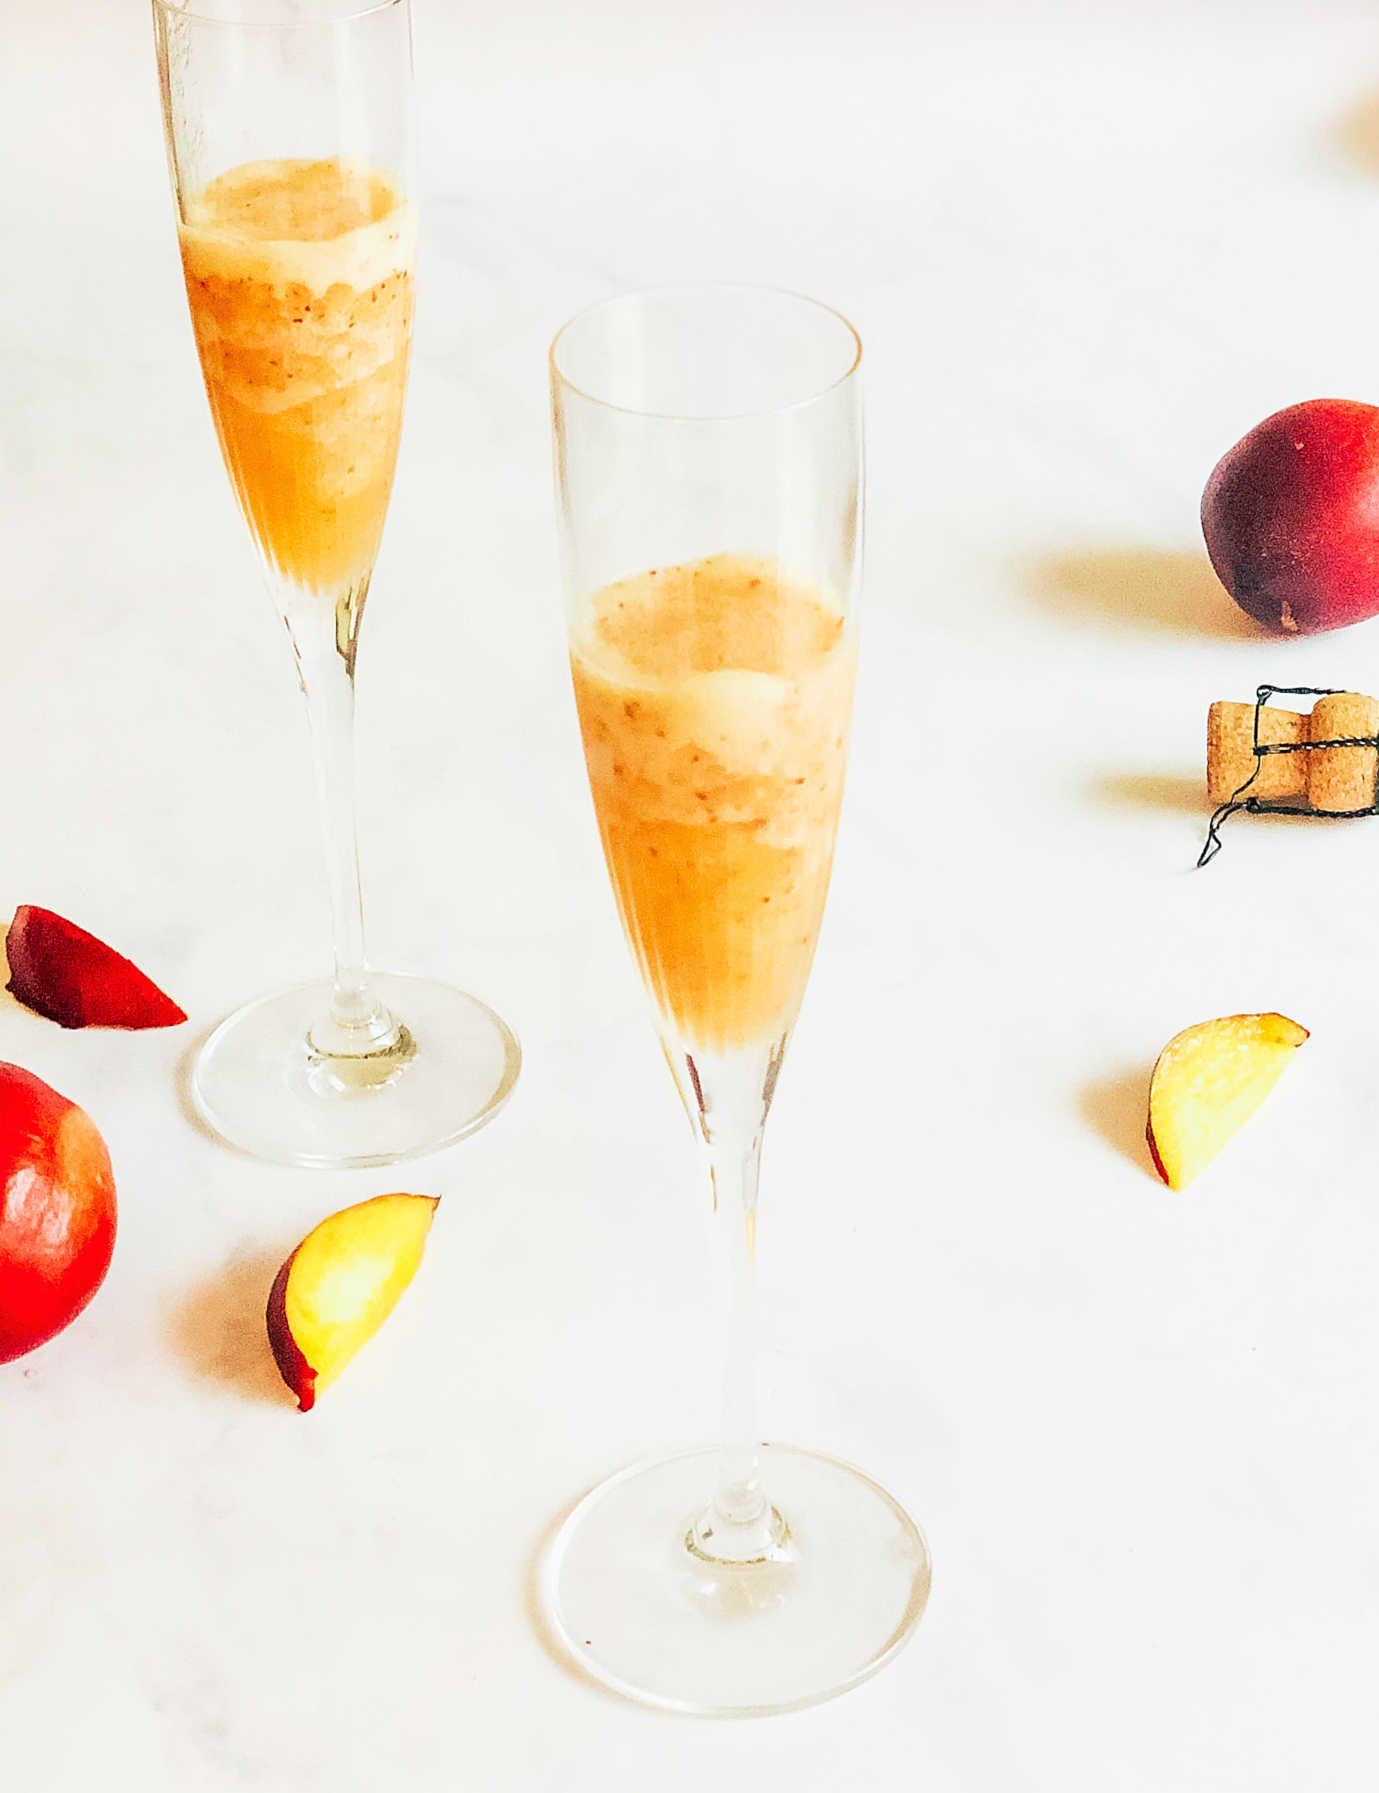 Add the peach mixture to the bottom of the Champagne glass